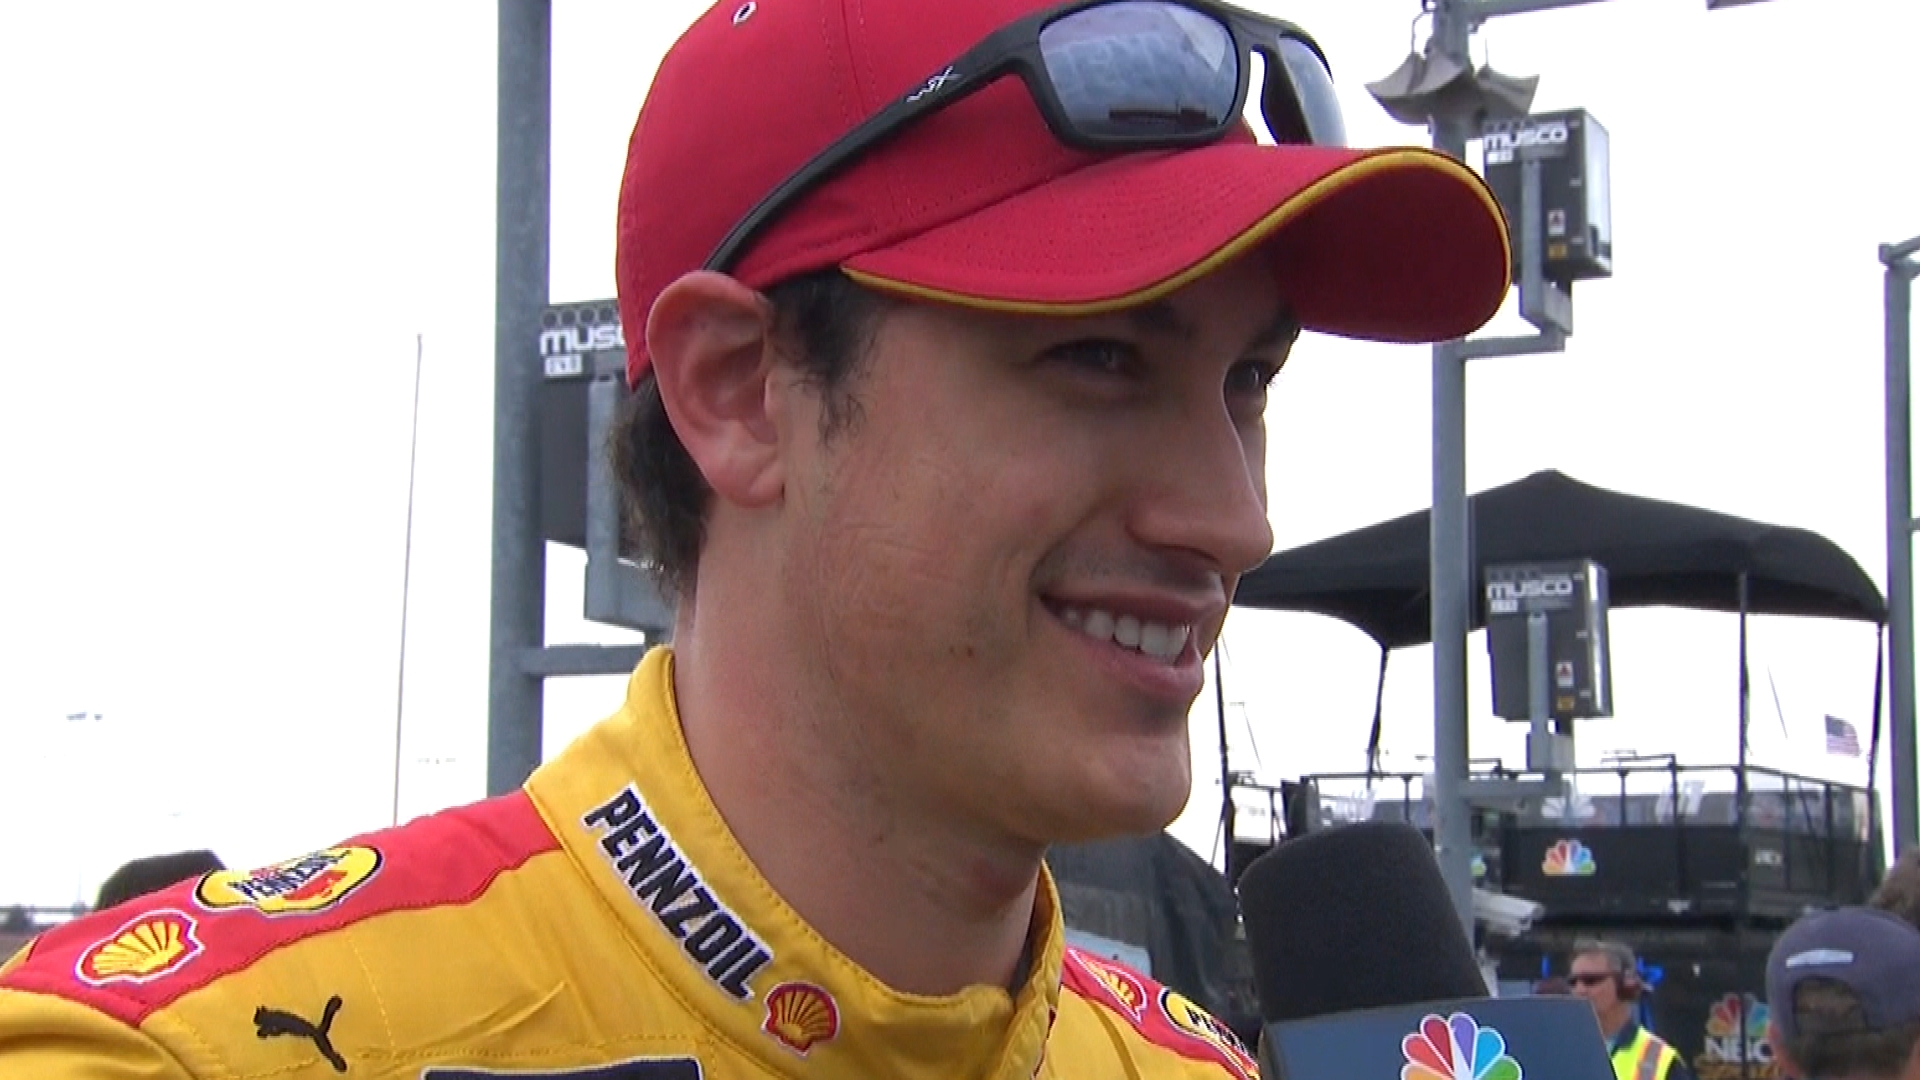 Joey Logano survives and advances to NASCAR Cup Series Playoffs Round